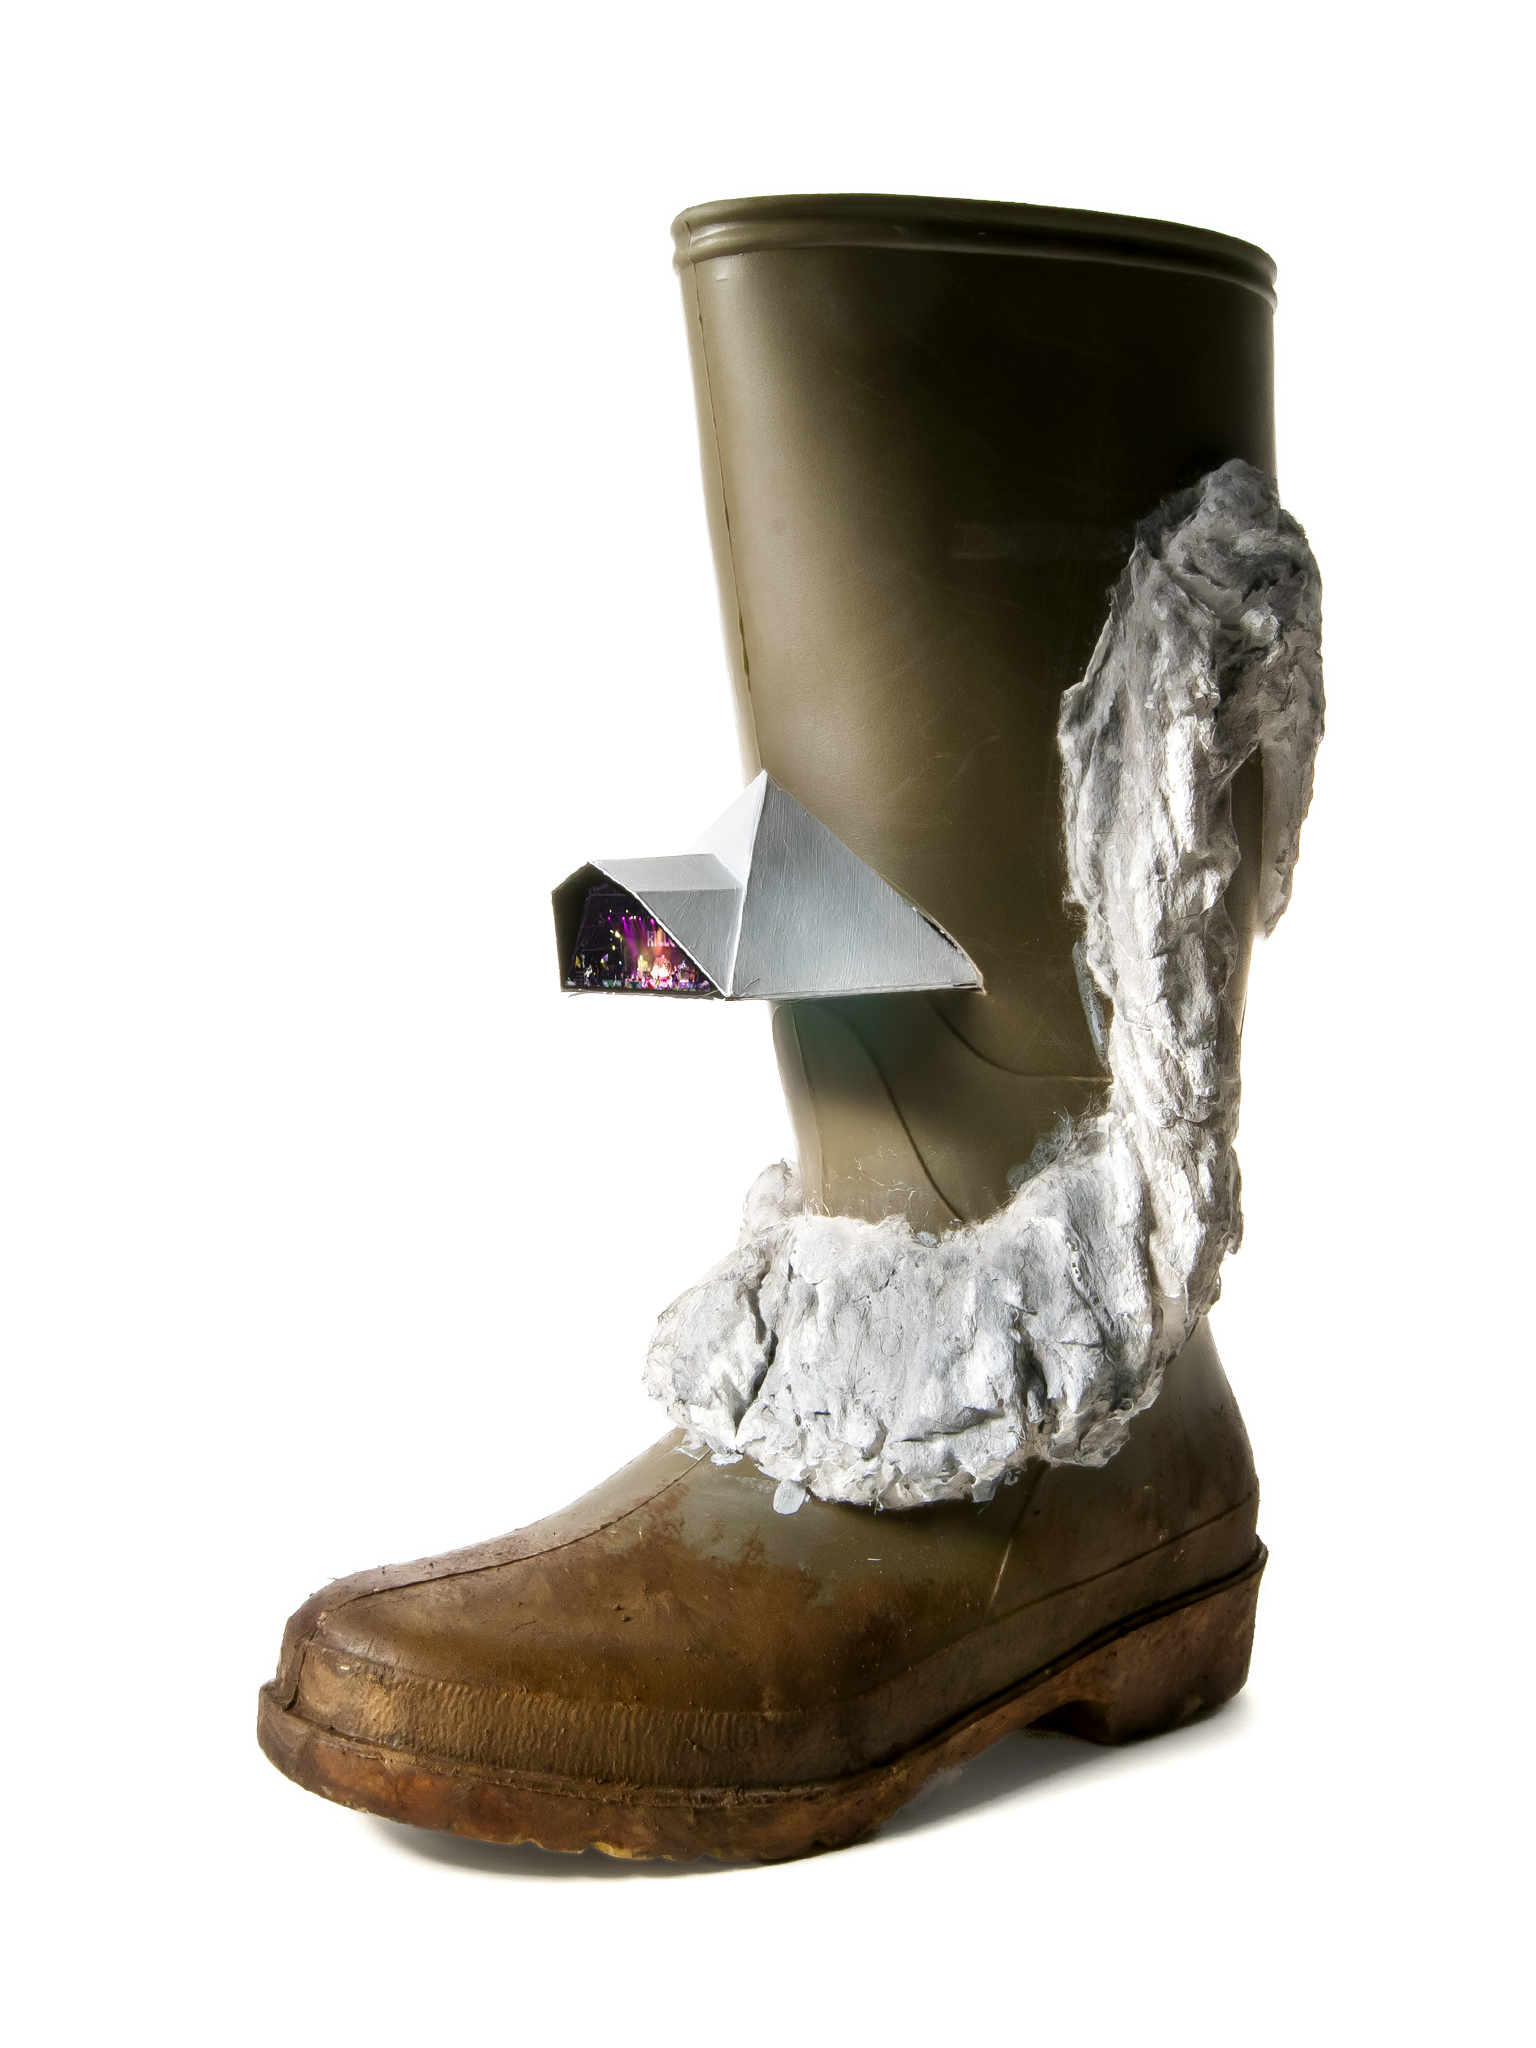 Welly customised to depict the visualness of Micheal Eavis.